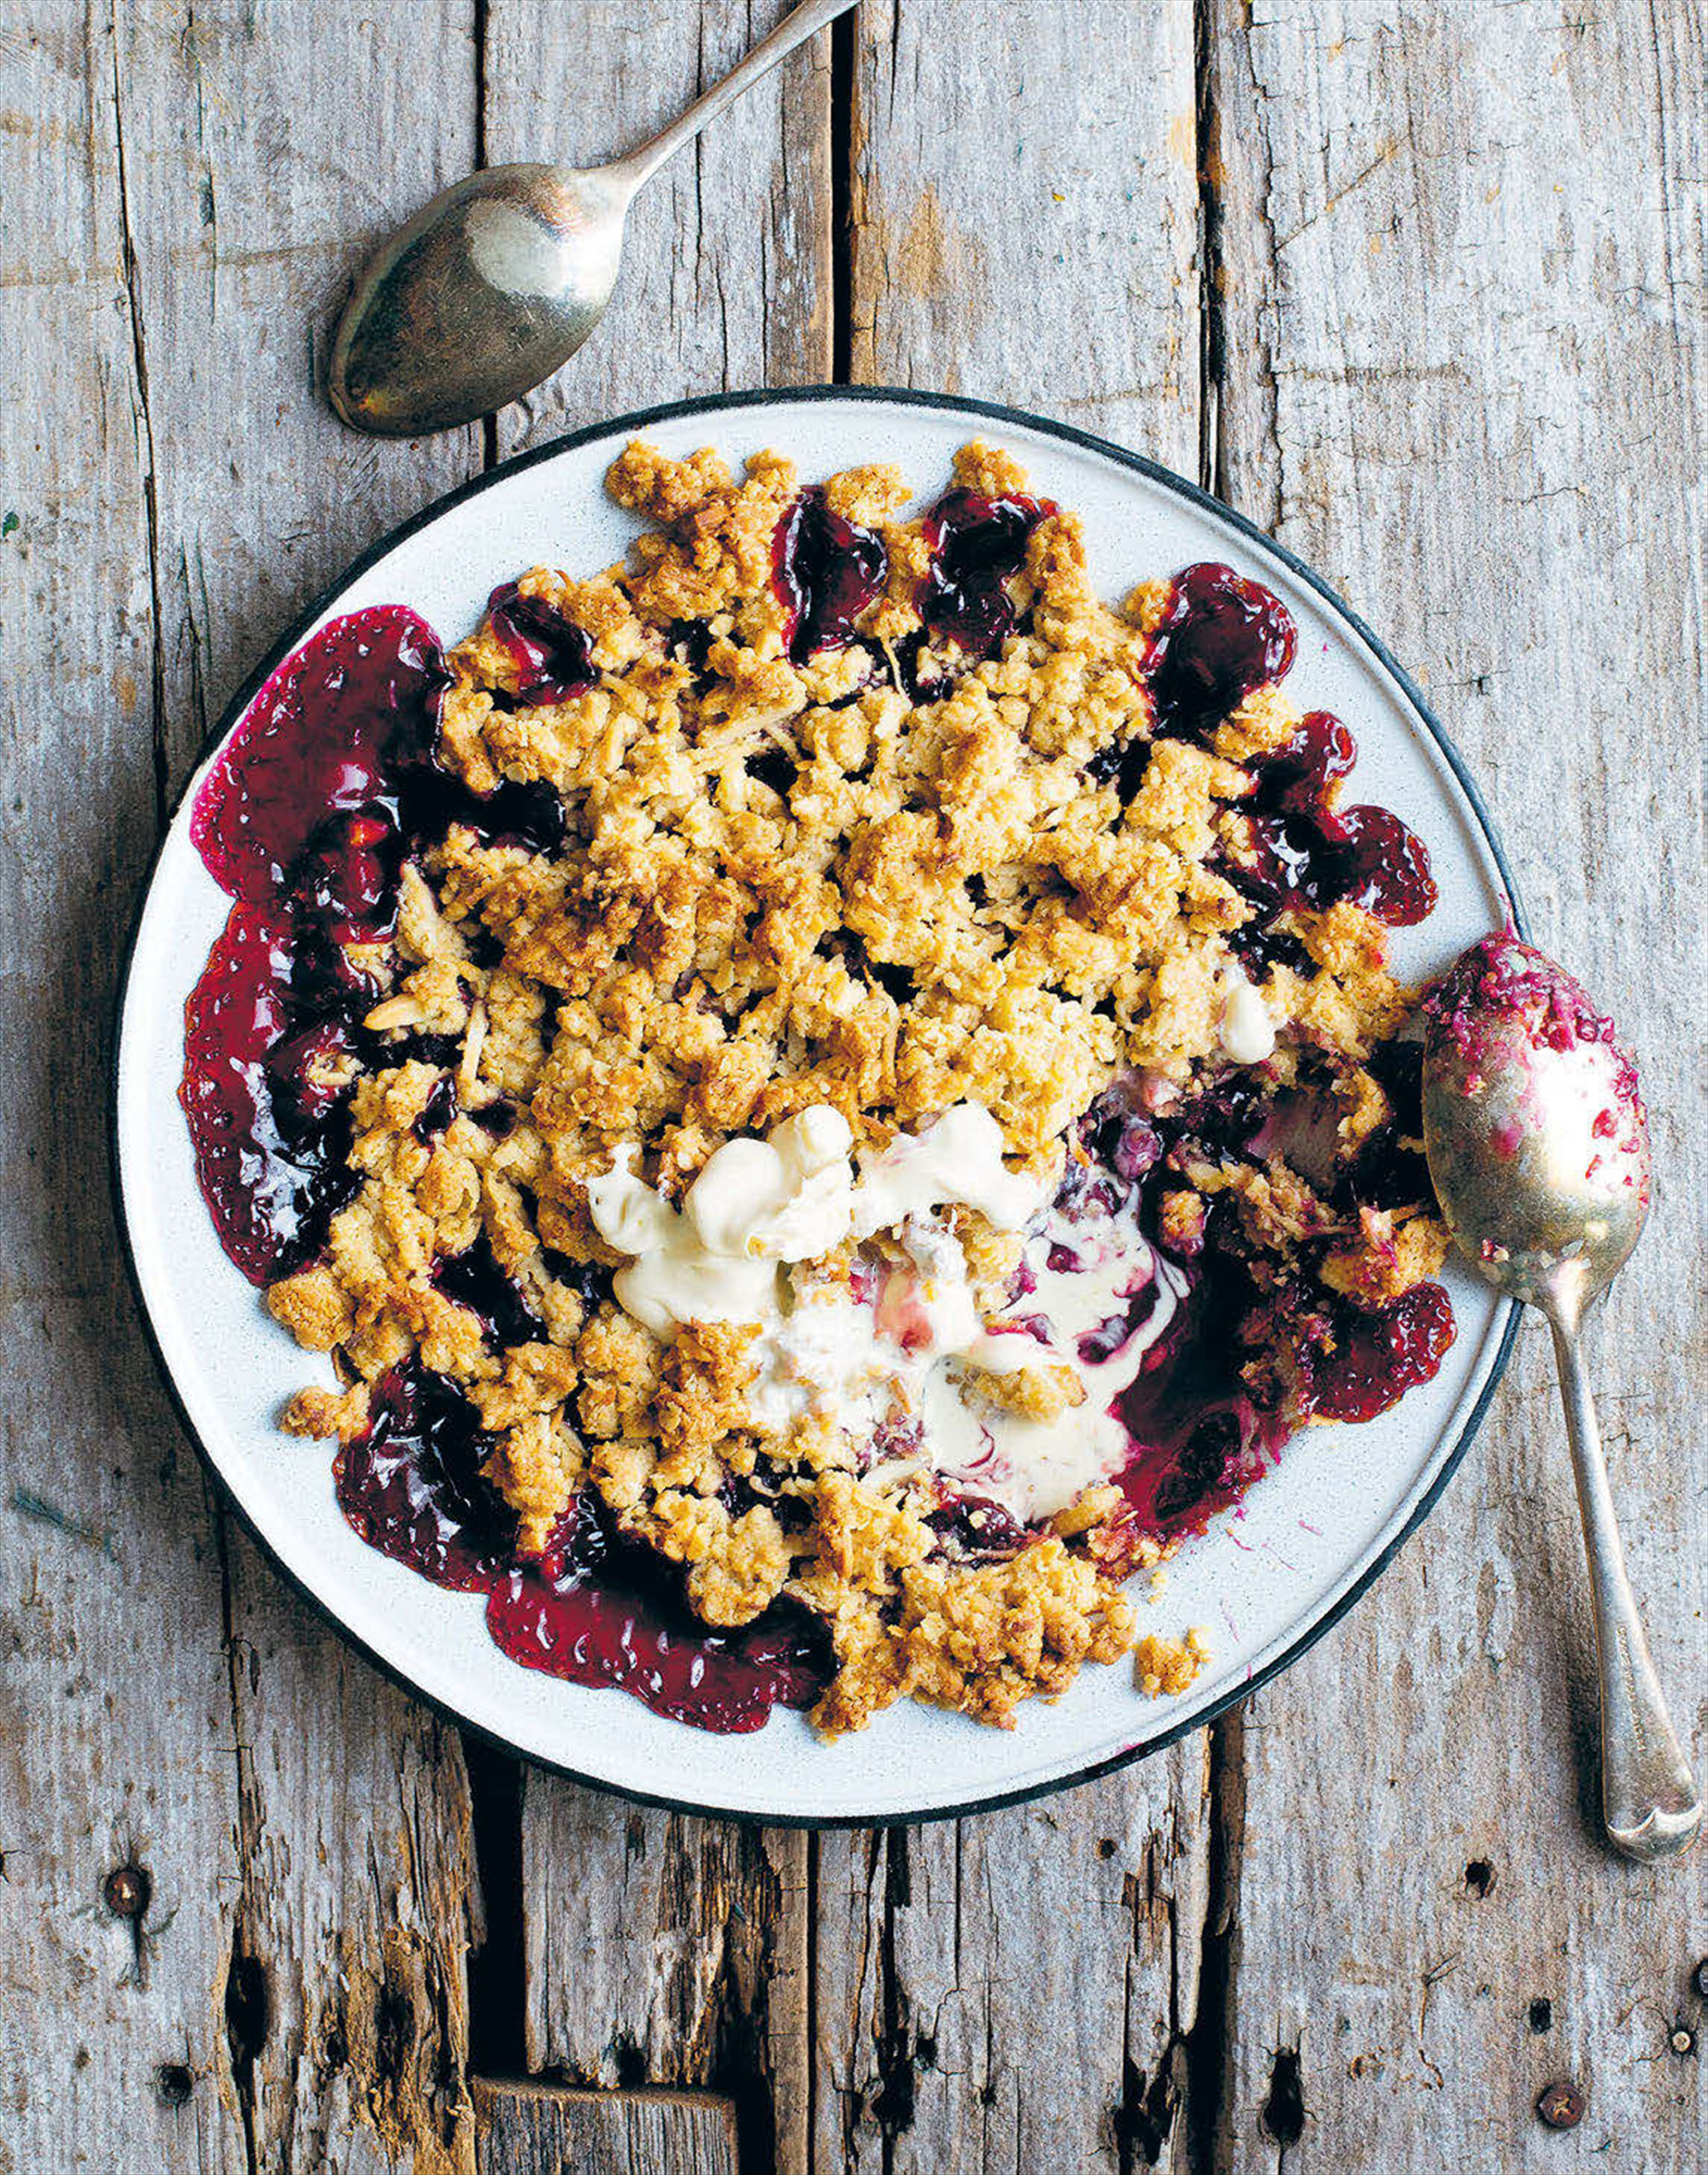 Cherry, blueberry and coconut bottomless pie